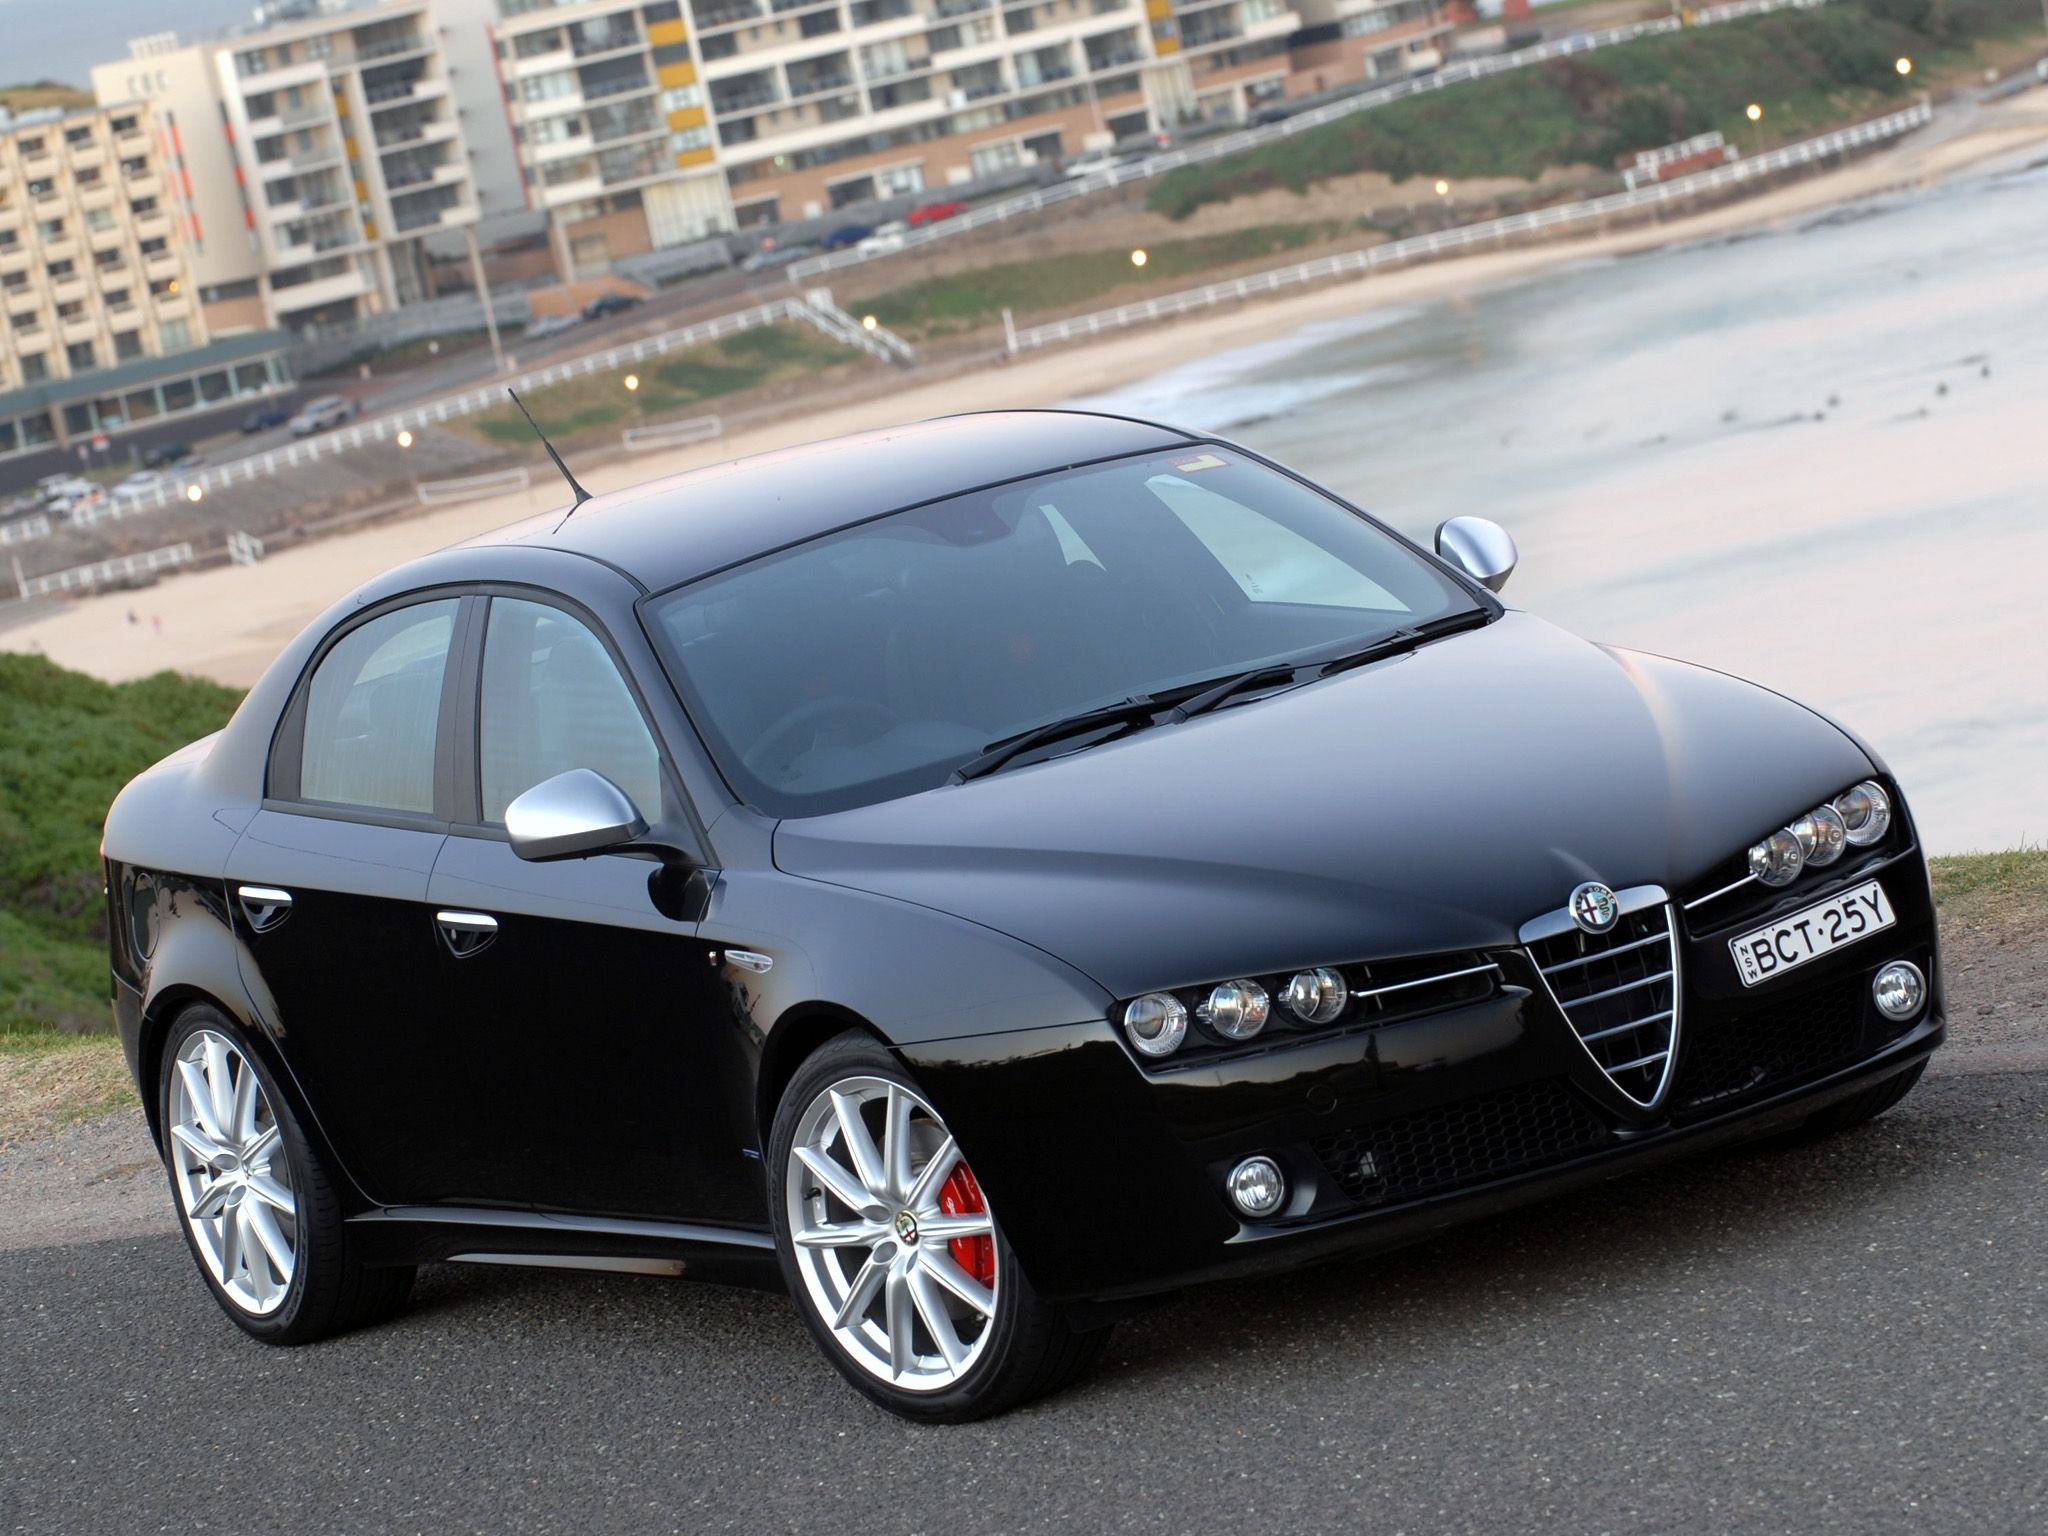 alfa romeo 159 1750 tbi ti alfa romeo pinterest alfa romeo 159 alfa romeo and cars. Black Bedroom Furniture Sets. Home Design Ideas